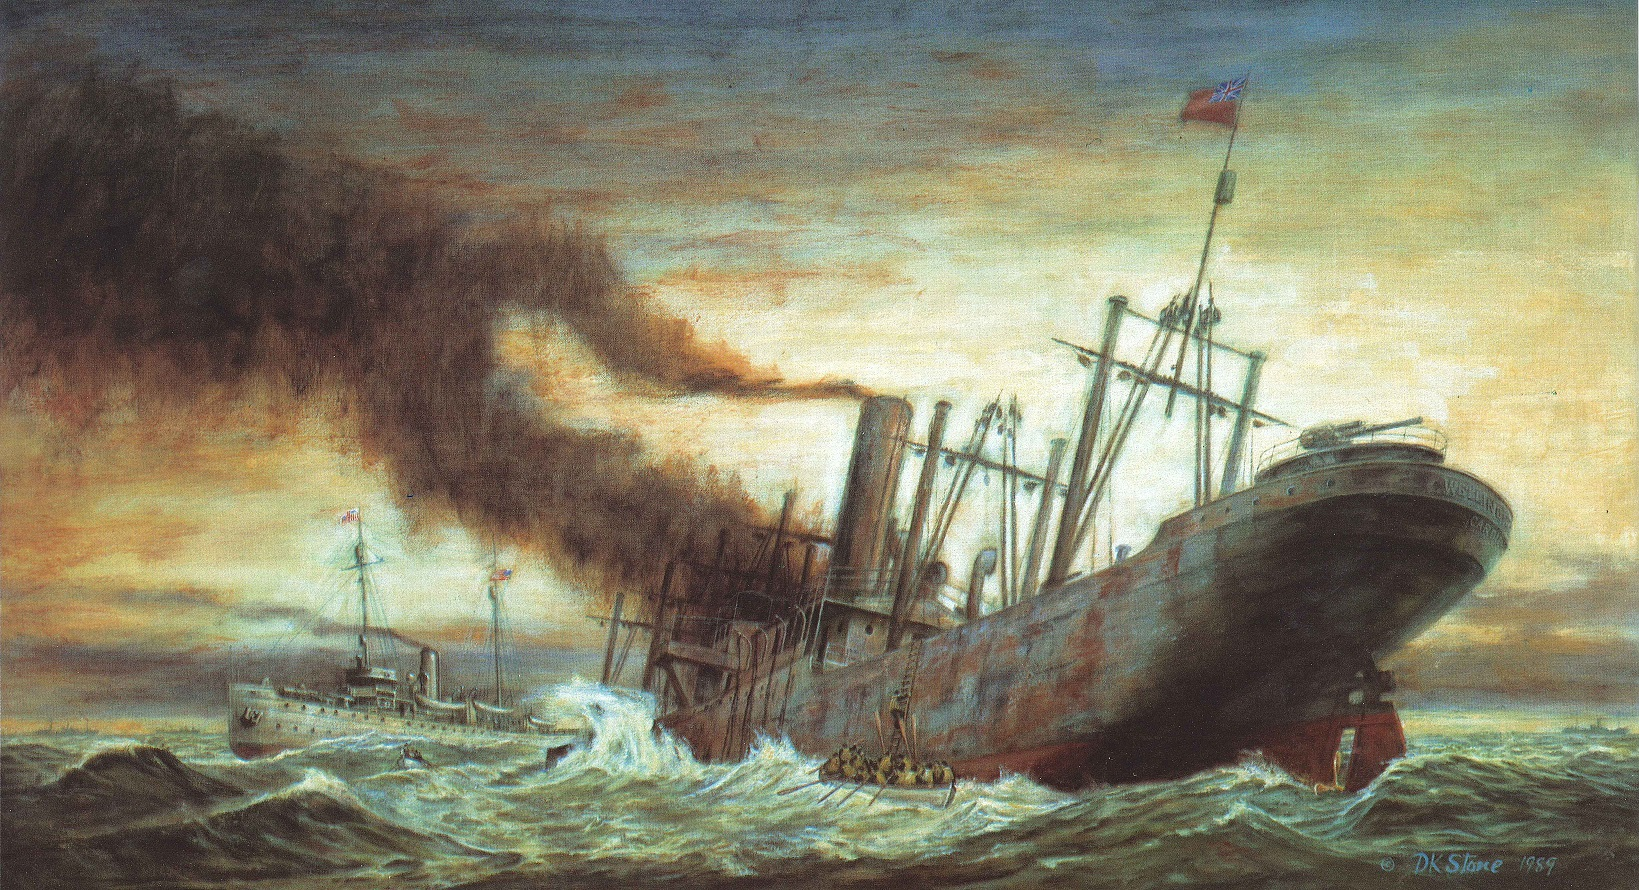 Painting of the Revenue Cutter Snohomish rescuing the lumber steamer Nika in heavy seas off the Washington Coast. (U.S. Coast Guard Collection)